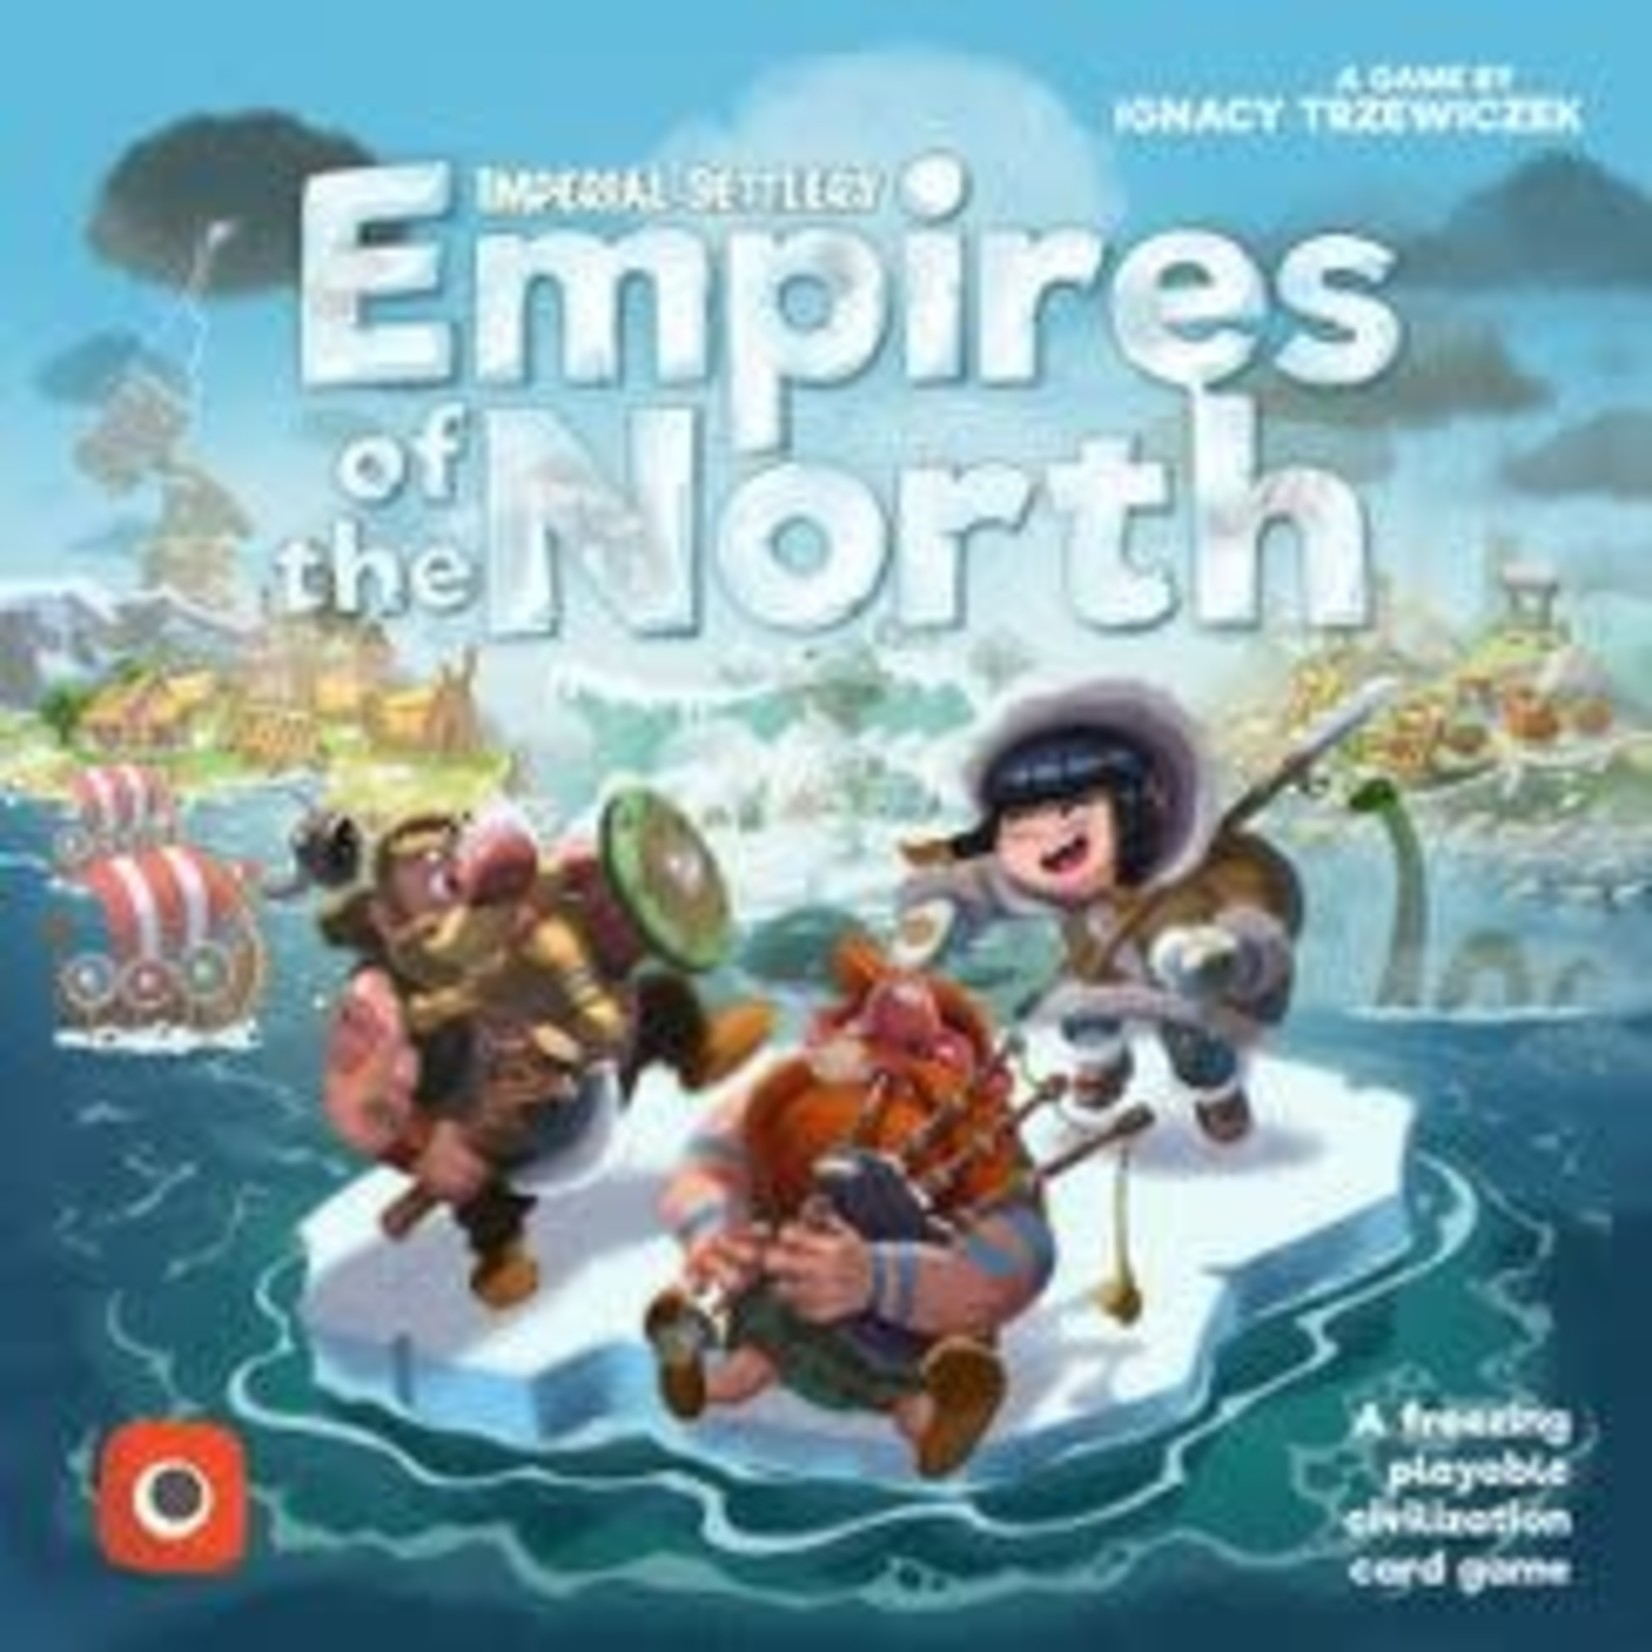 Imperial Settlers: Empire of the North Board Game